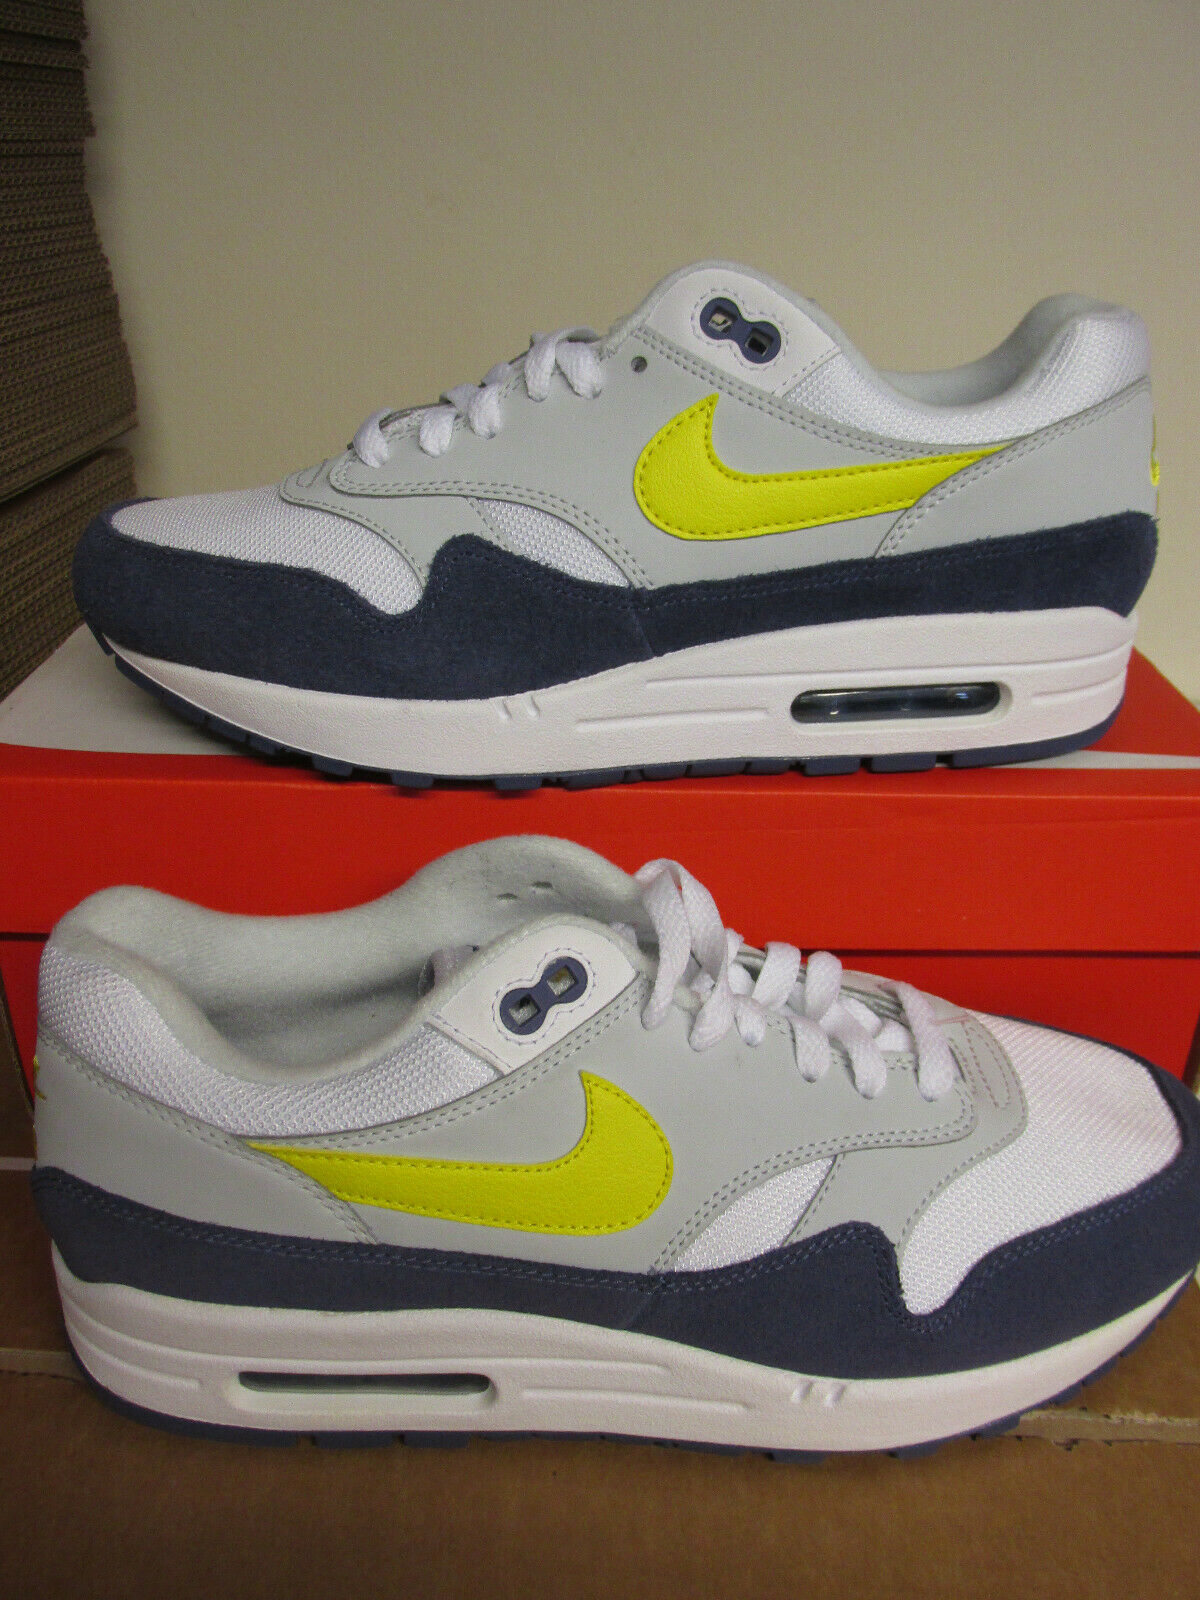 Nike Air Max 1 Baskets hommes Ah8145 105 Baskets Enlèvehommest